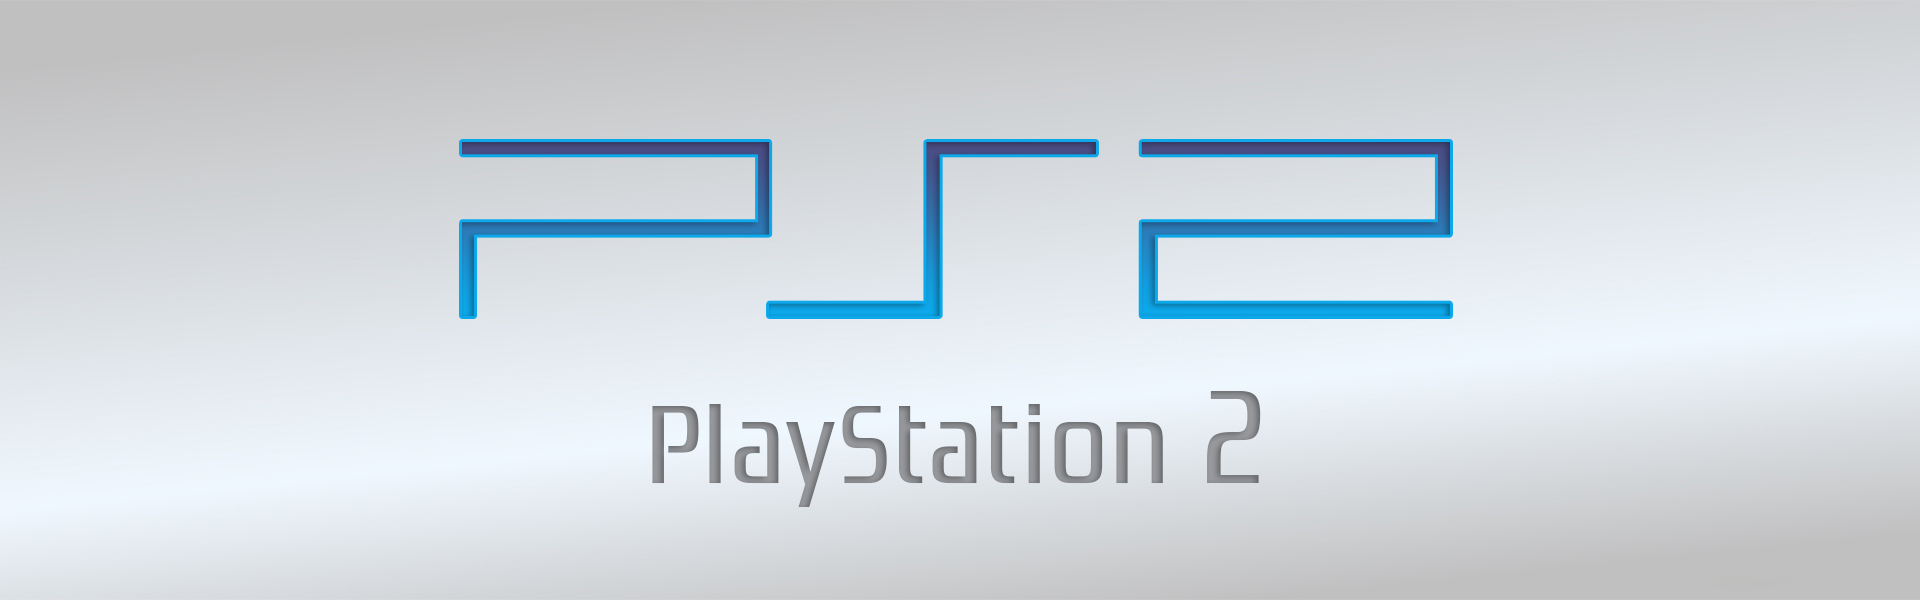 MPU_Ep54_Playstation_2_Revisited_1920x600